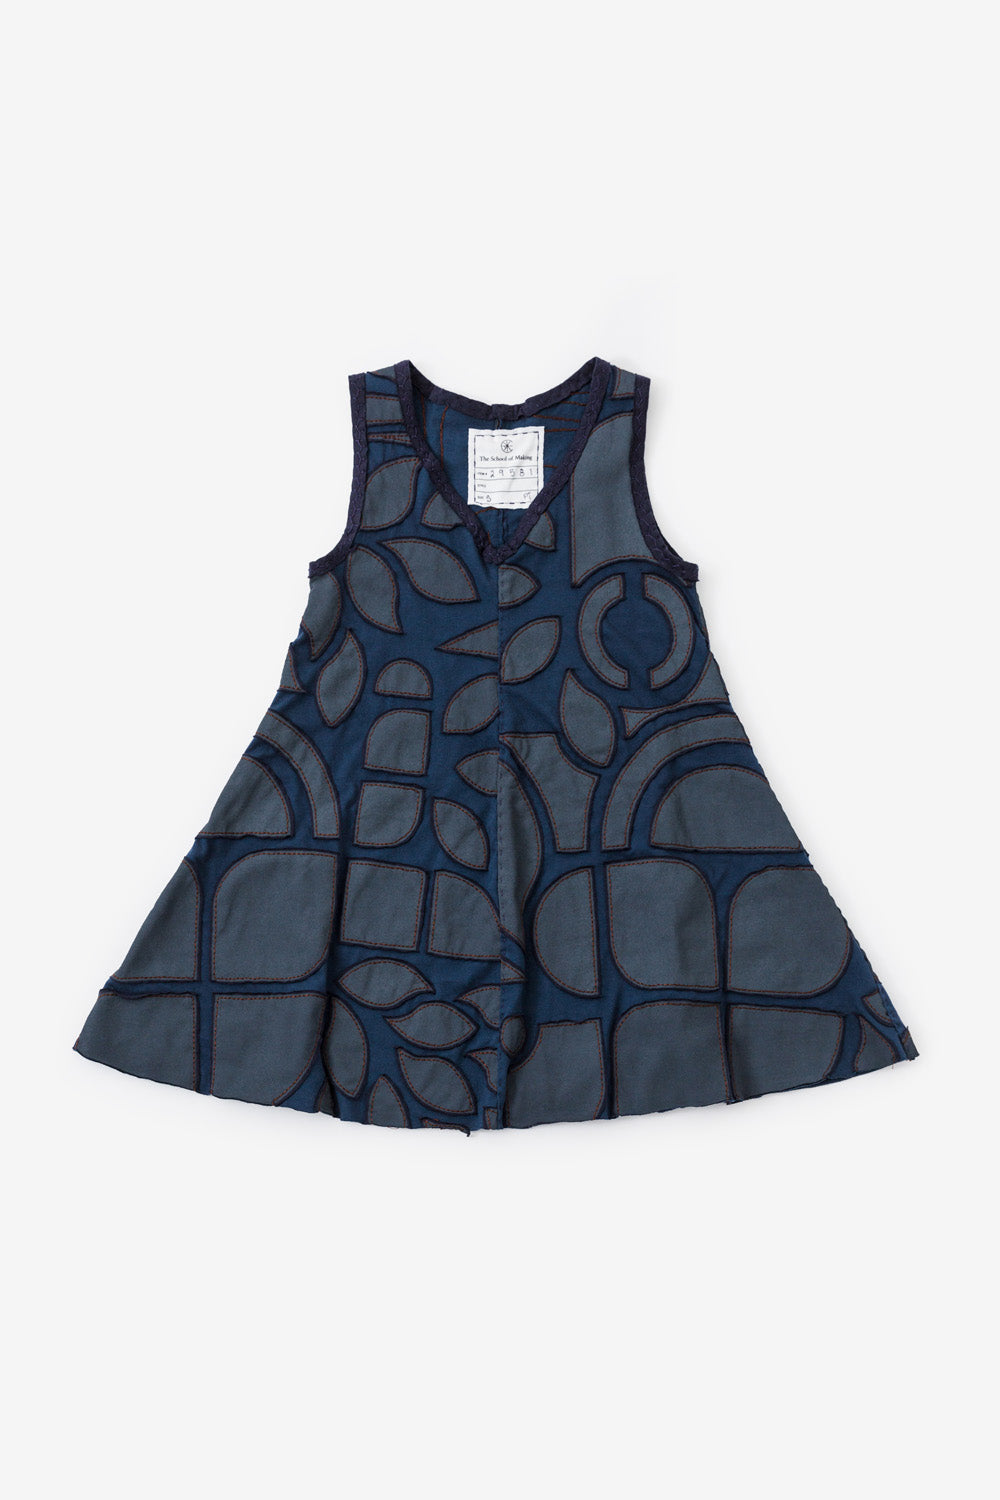 The School of Making A-Line Top and Tunic Kit Sleeveless in Blue